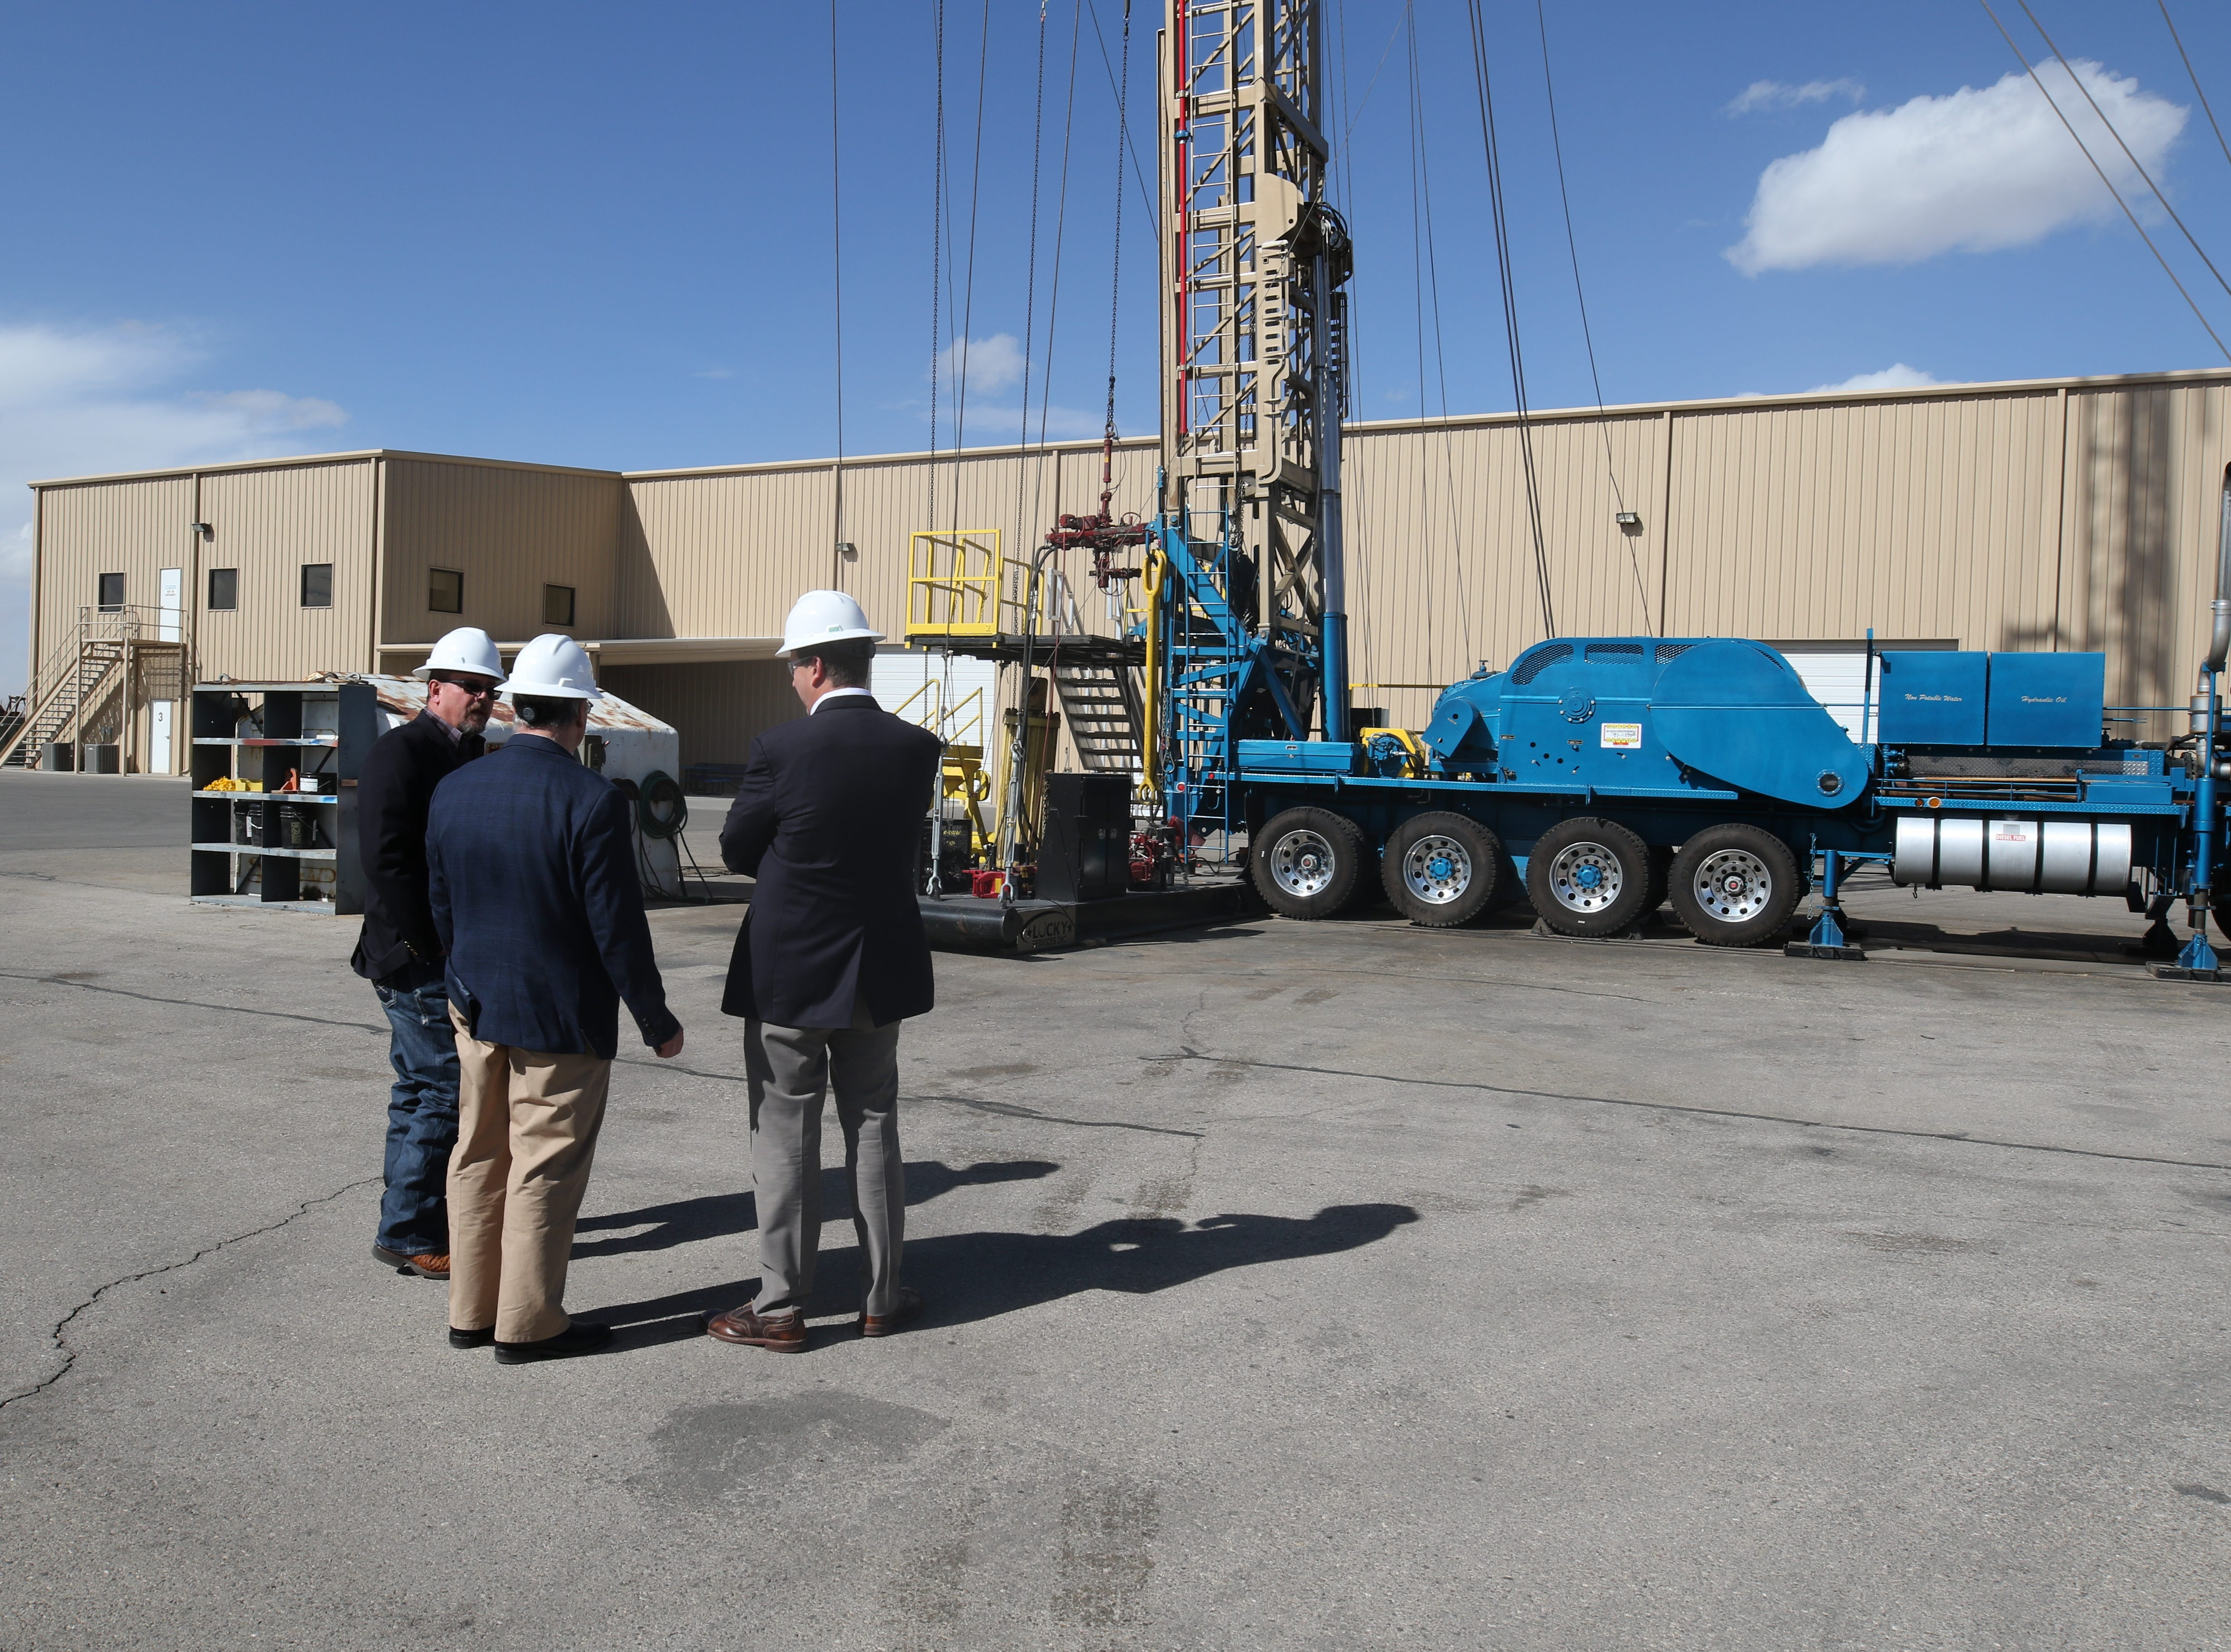 Staff from the U.S. Department of the Interior tour an oil rig, Feb. 6, 2019 at Watson Hopper in Hobbs.